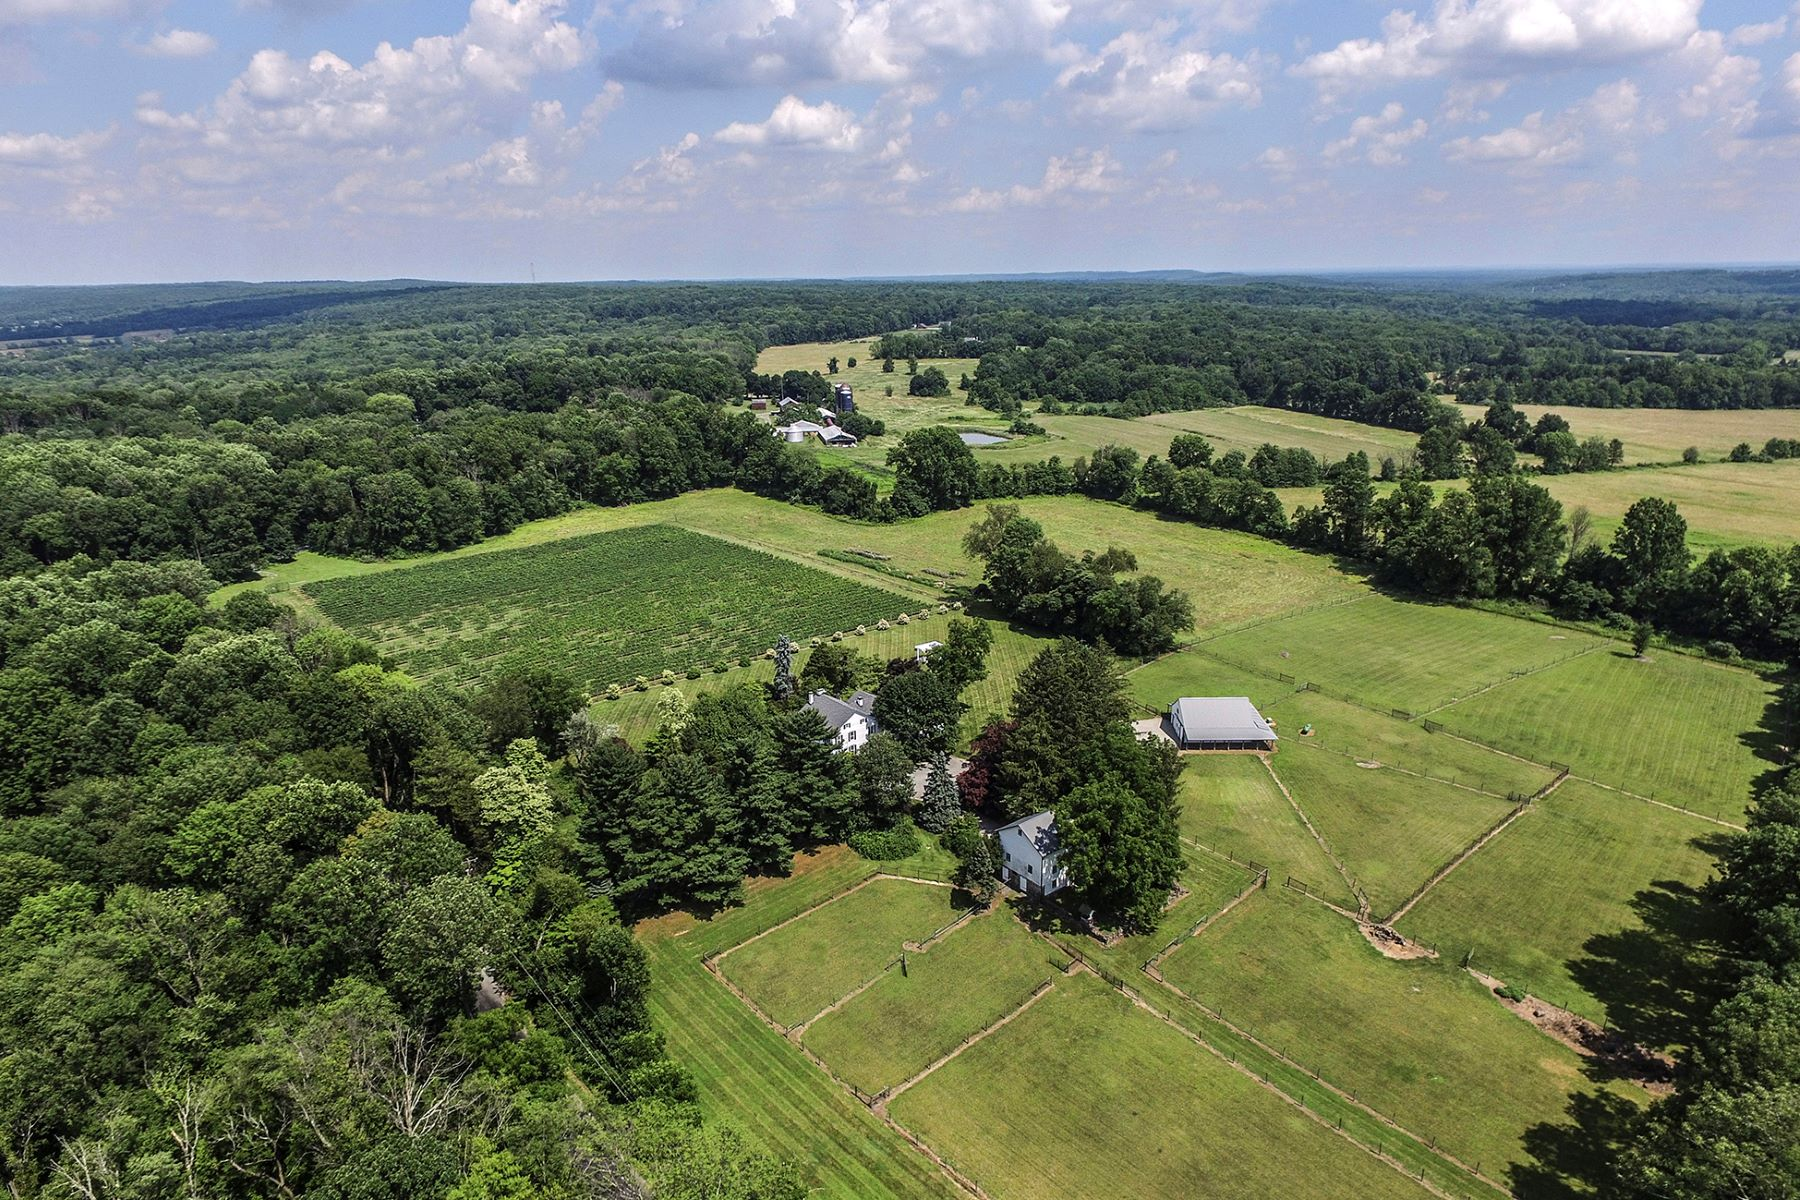 Single Family Home for Sale at Luxurious Country Living at Bell Well Farm - East Amwell Township 121 Rocktown Road Ringoes, 08551 United States